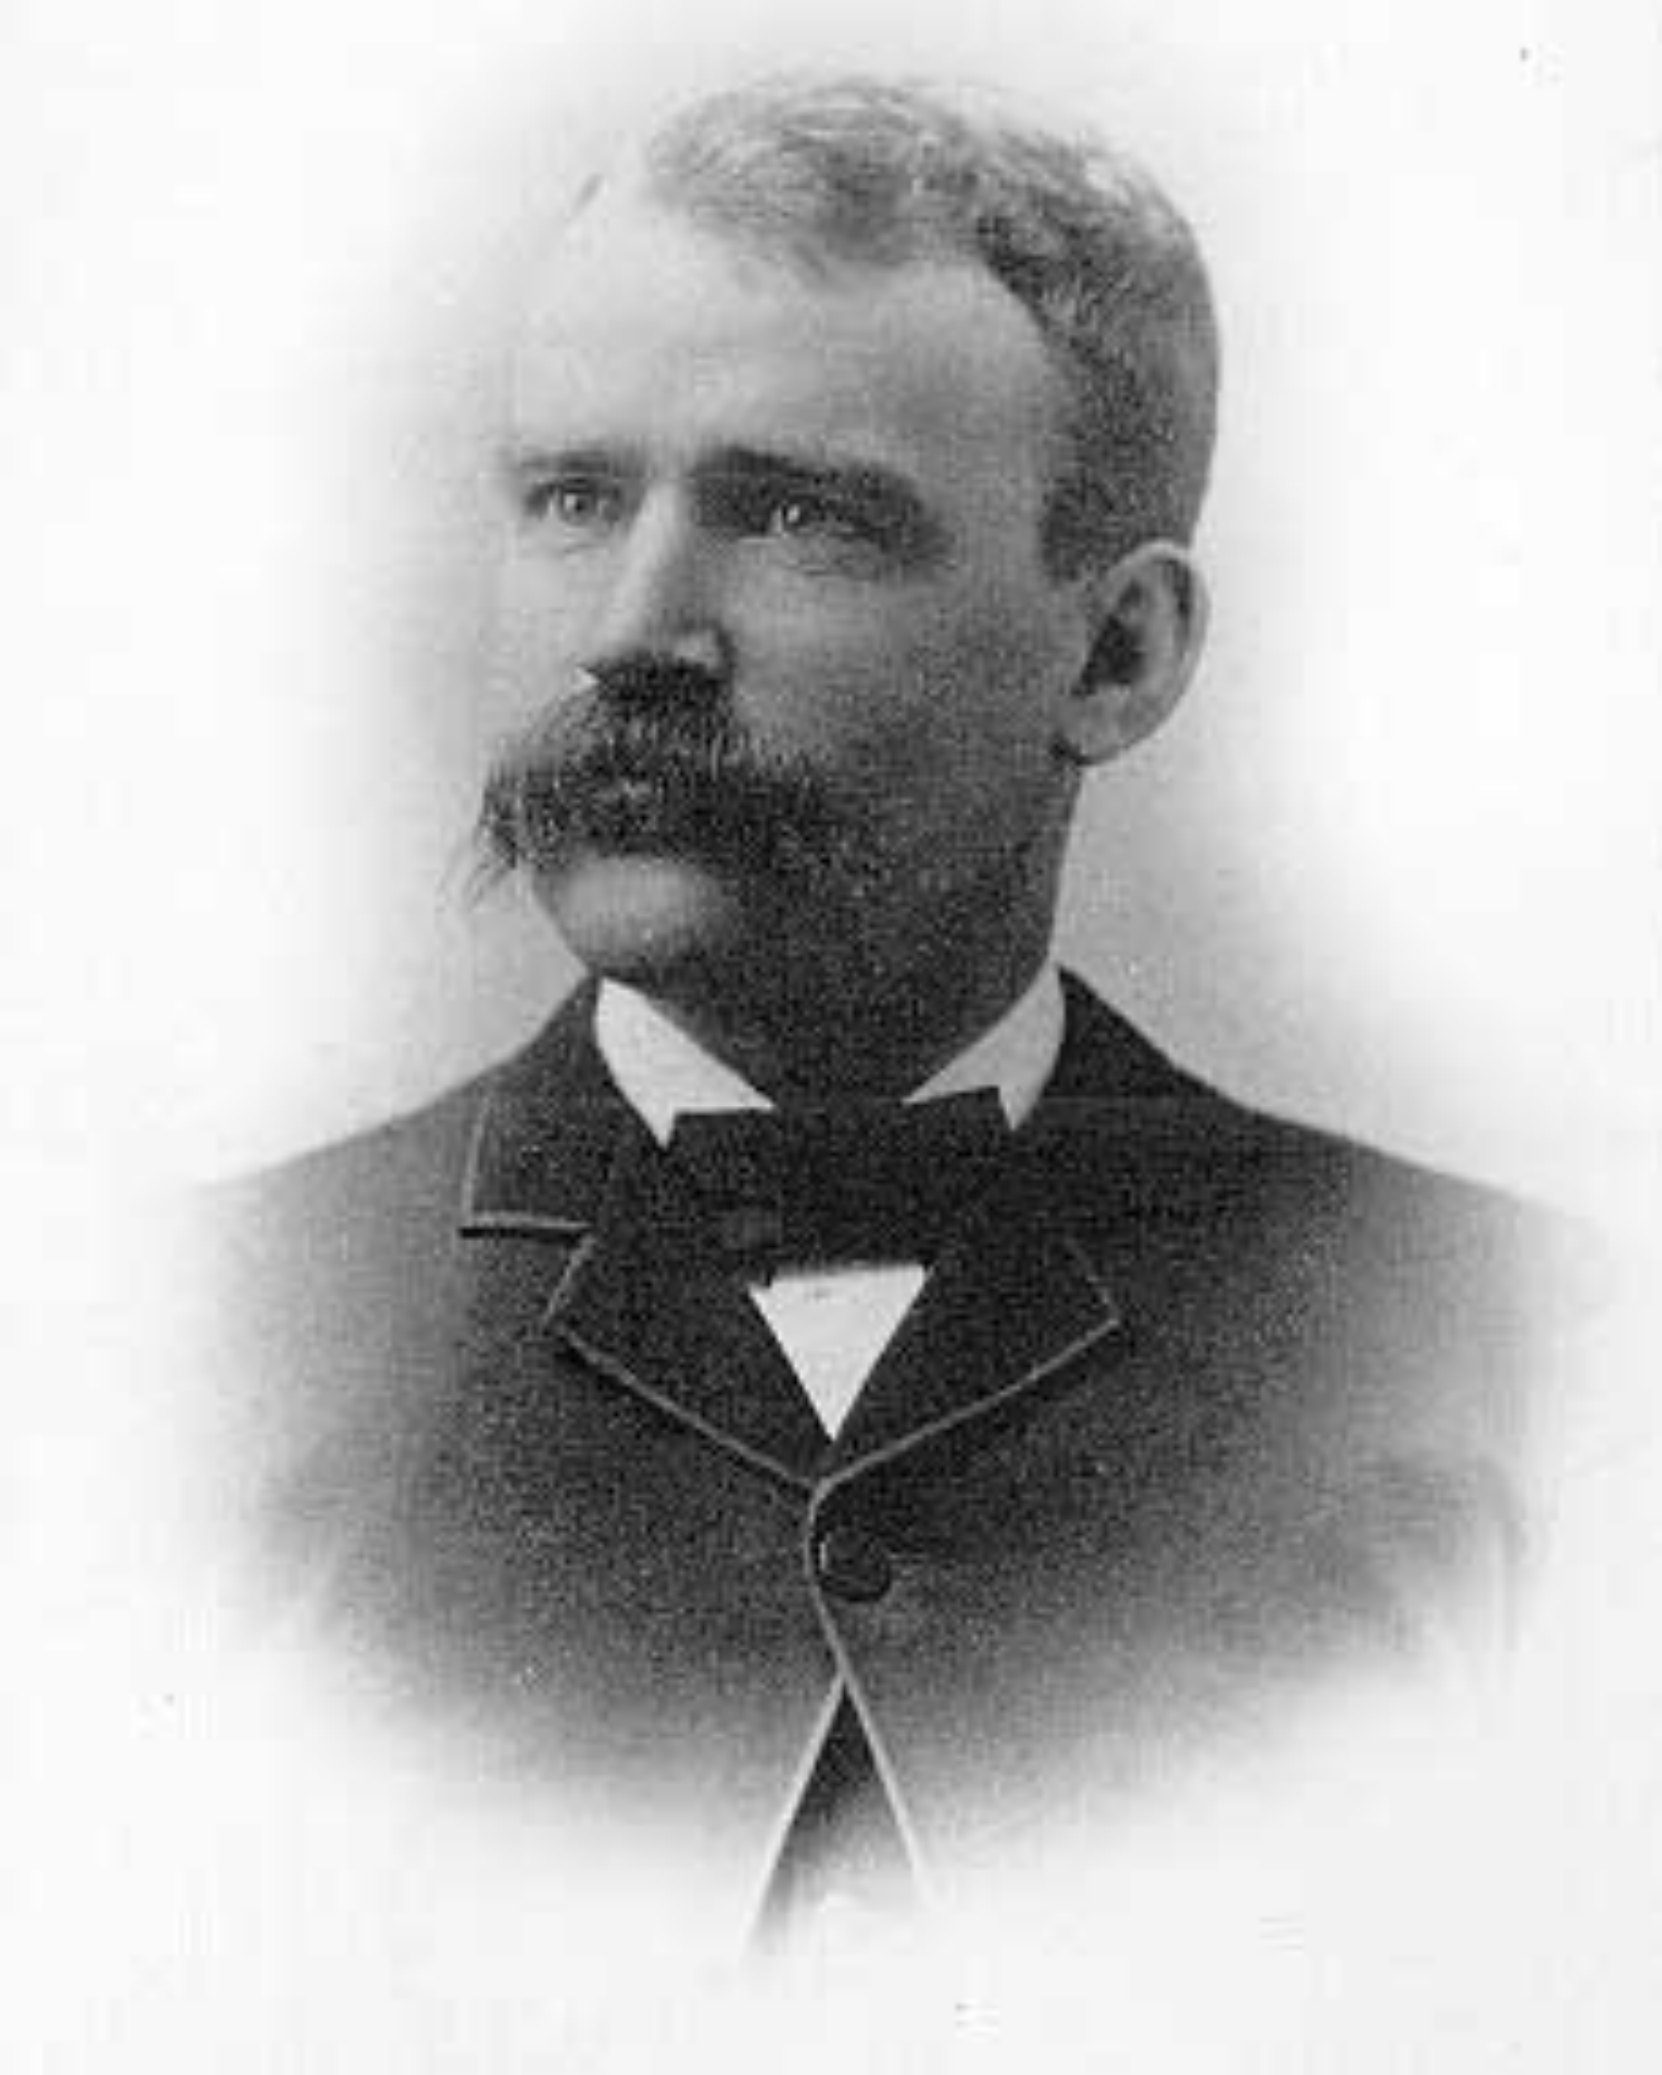 James McLeod Campbell, circa 1907 as Reeve of North Cowichan